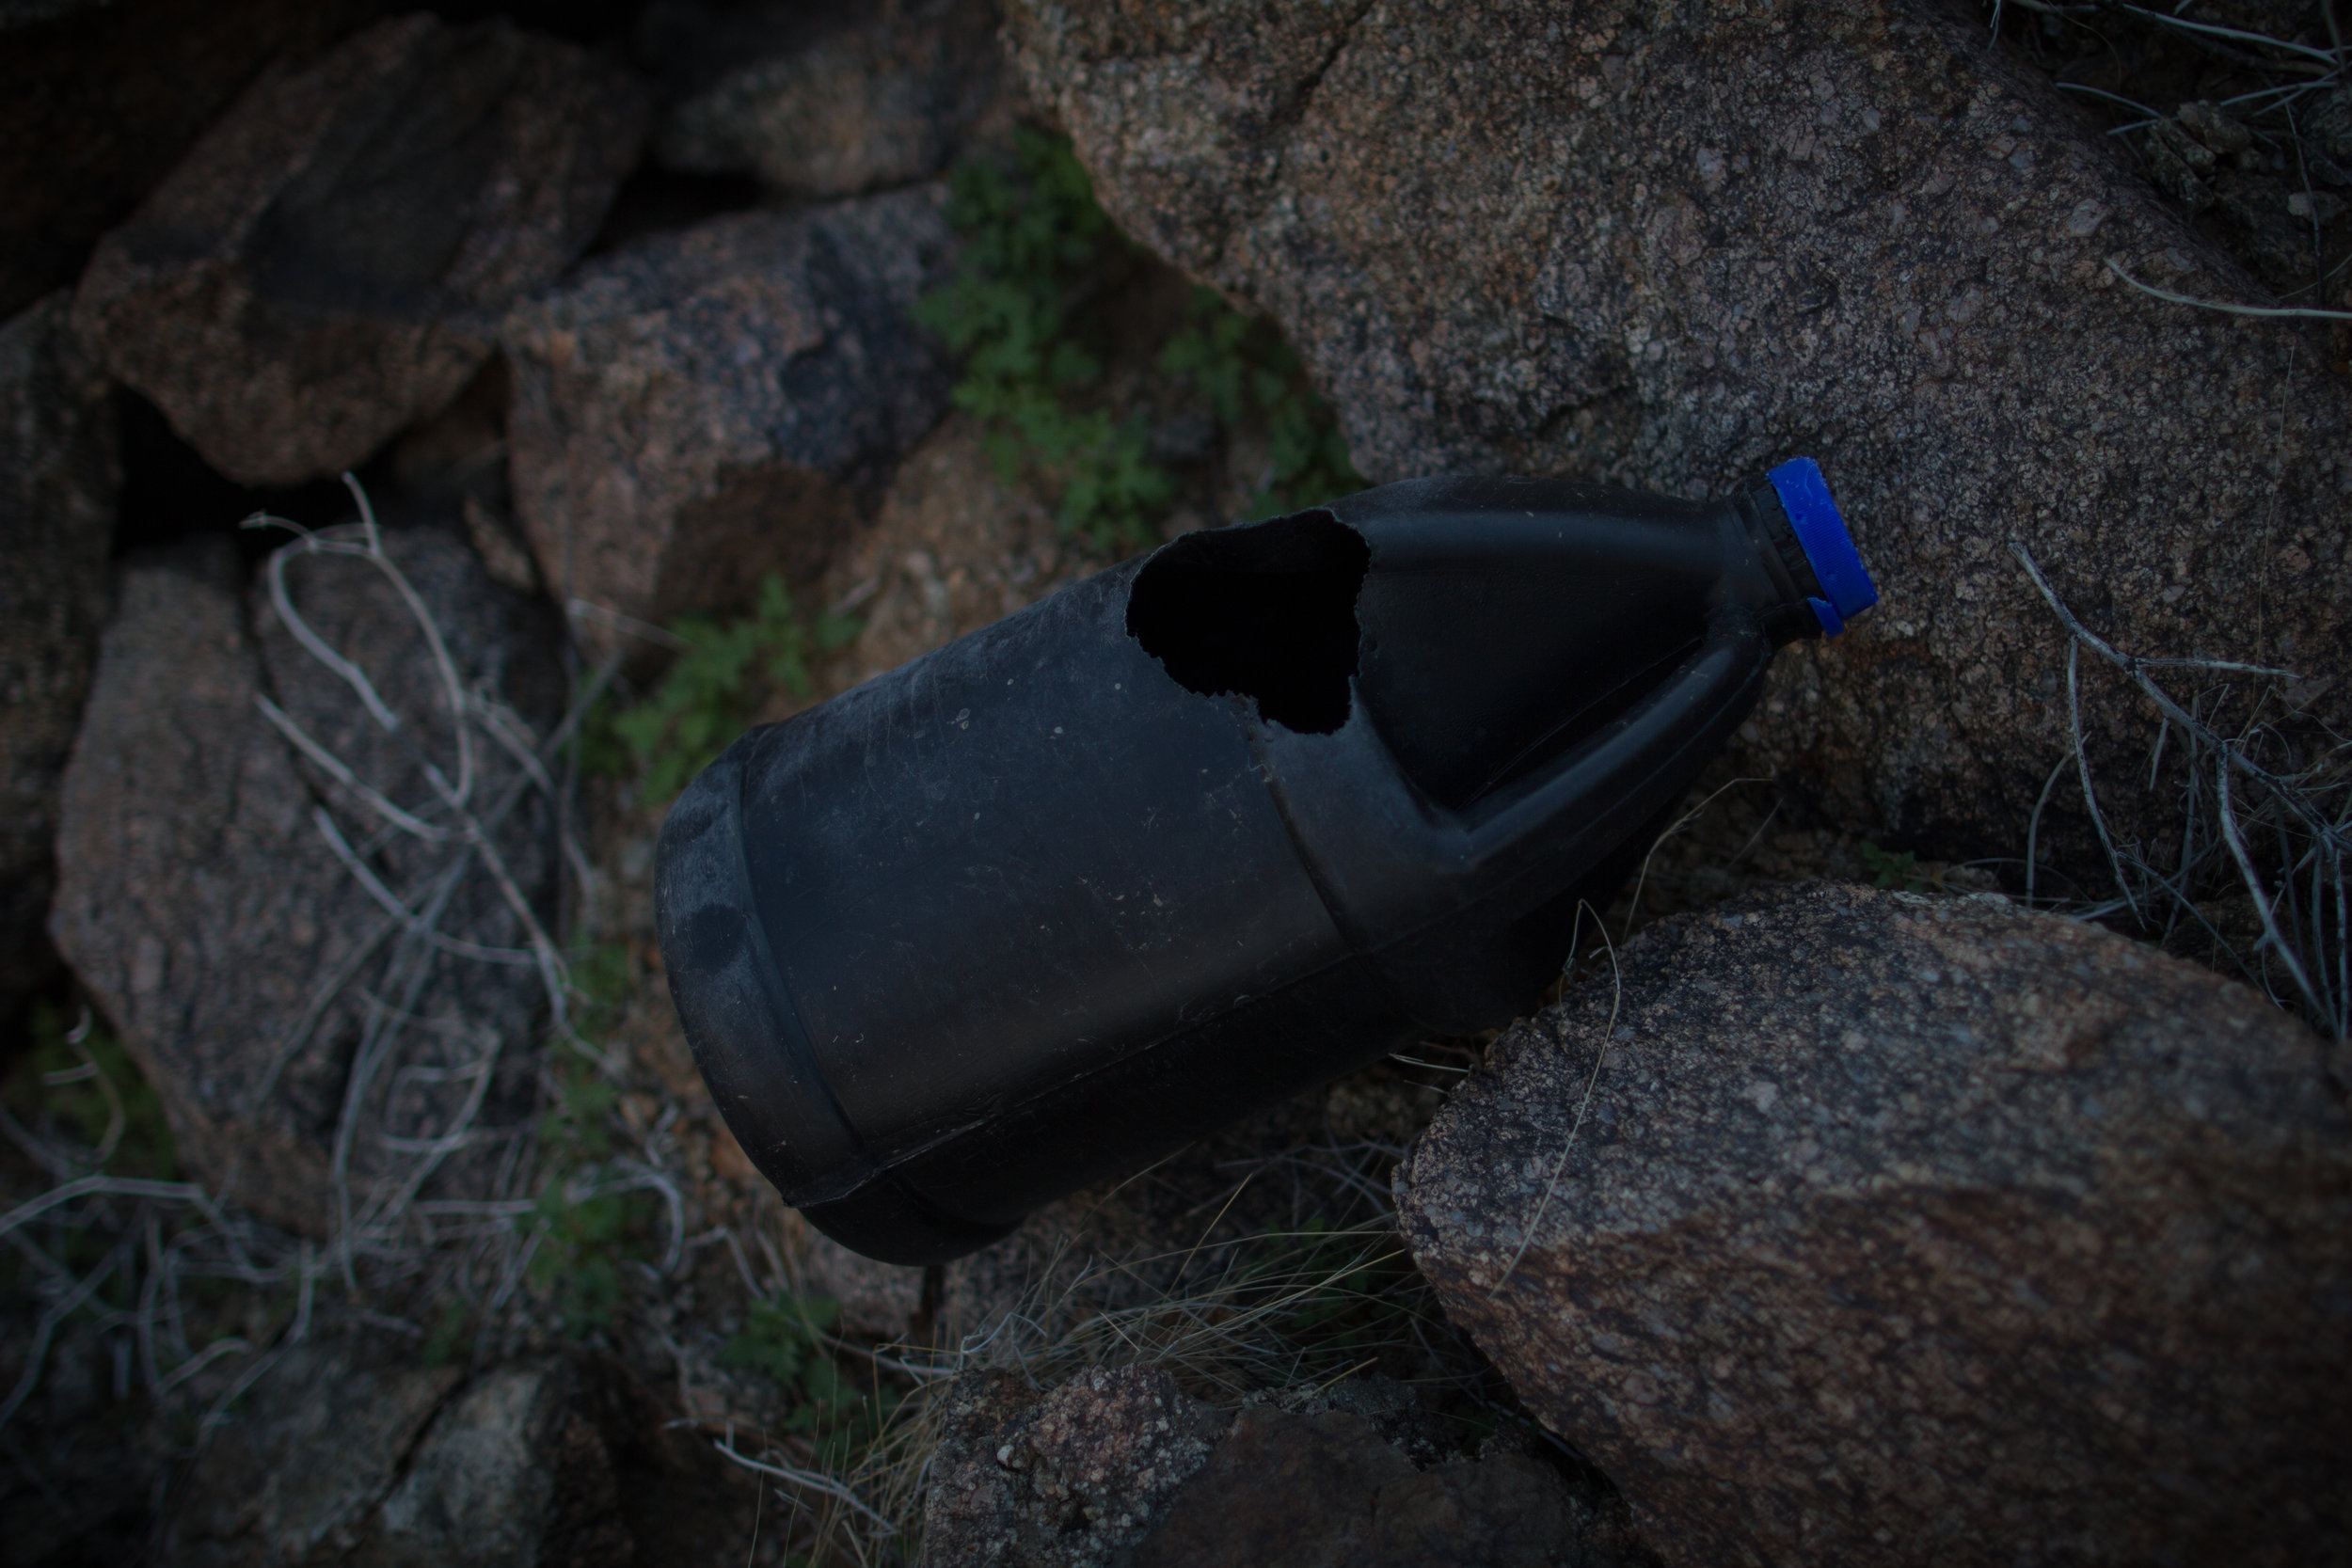 Despite designated wildernesses the deserts of Southern Arizona are filled with litter left behind by traffickers. They use black water bottles to be less visible at night. This one has been chewed through by a thirsty animal.